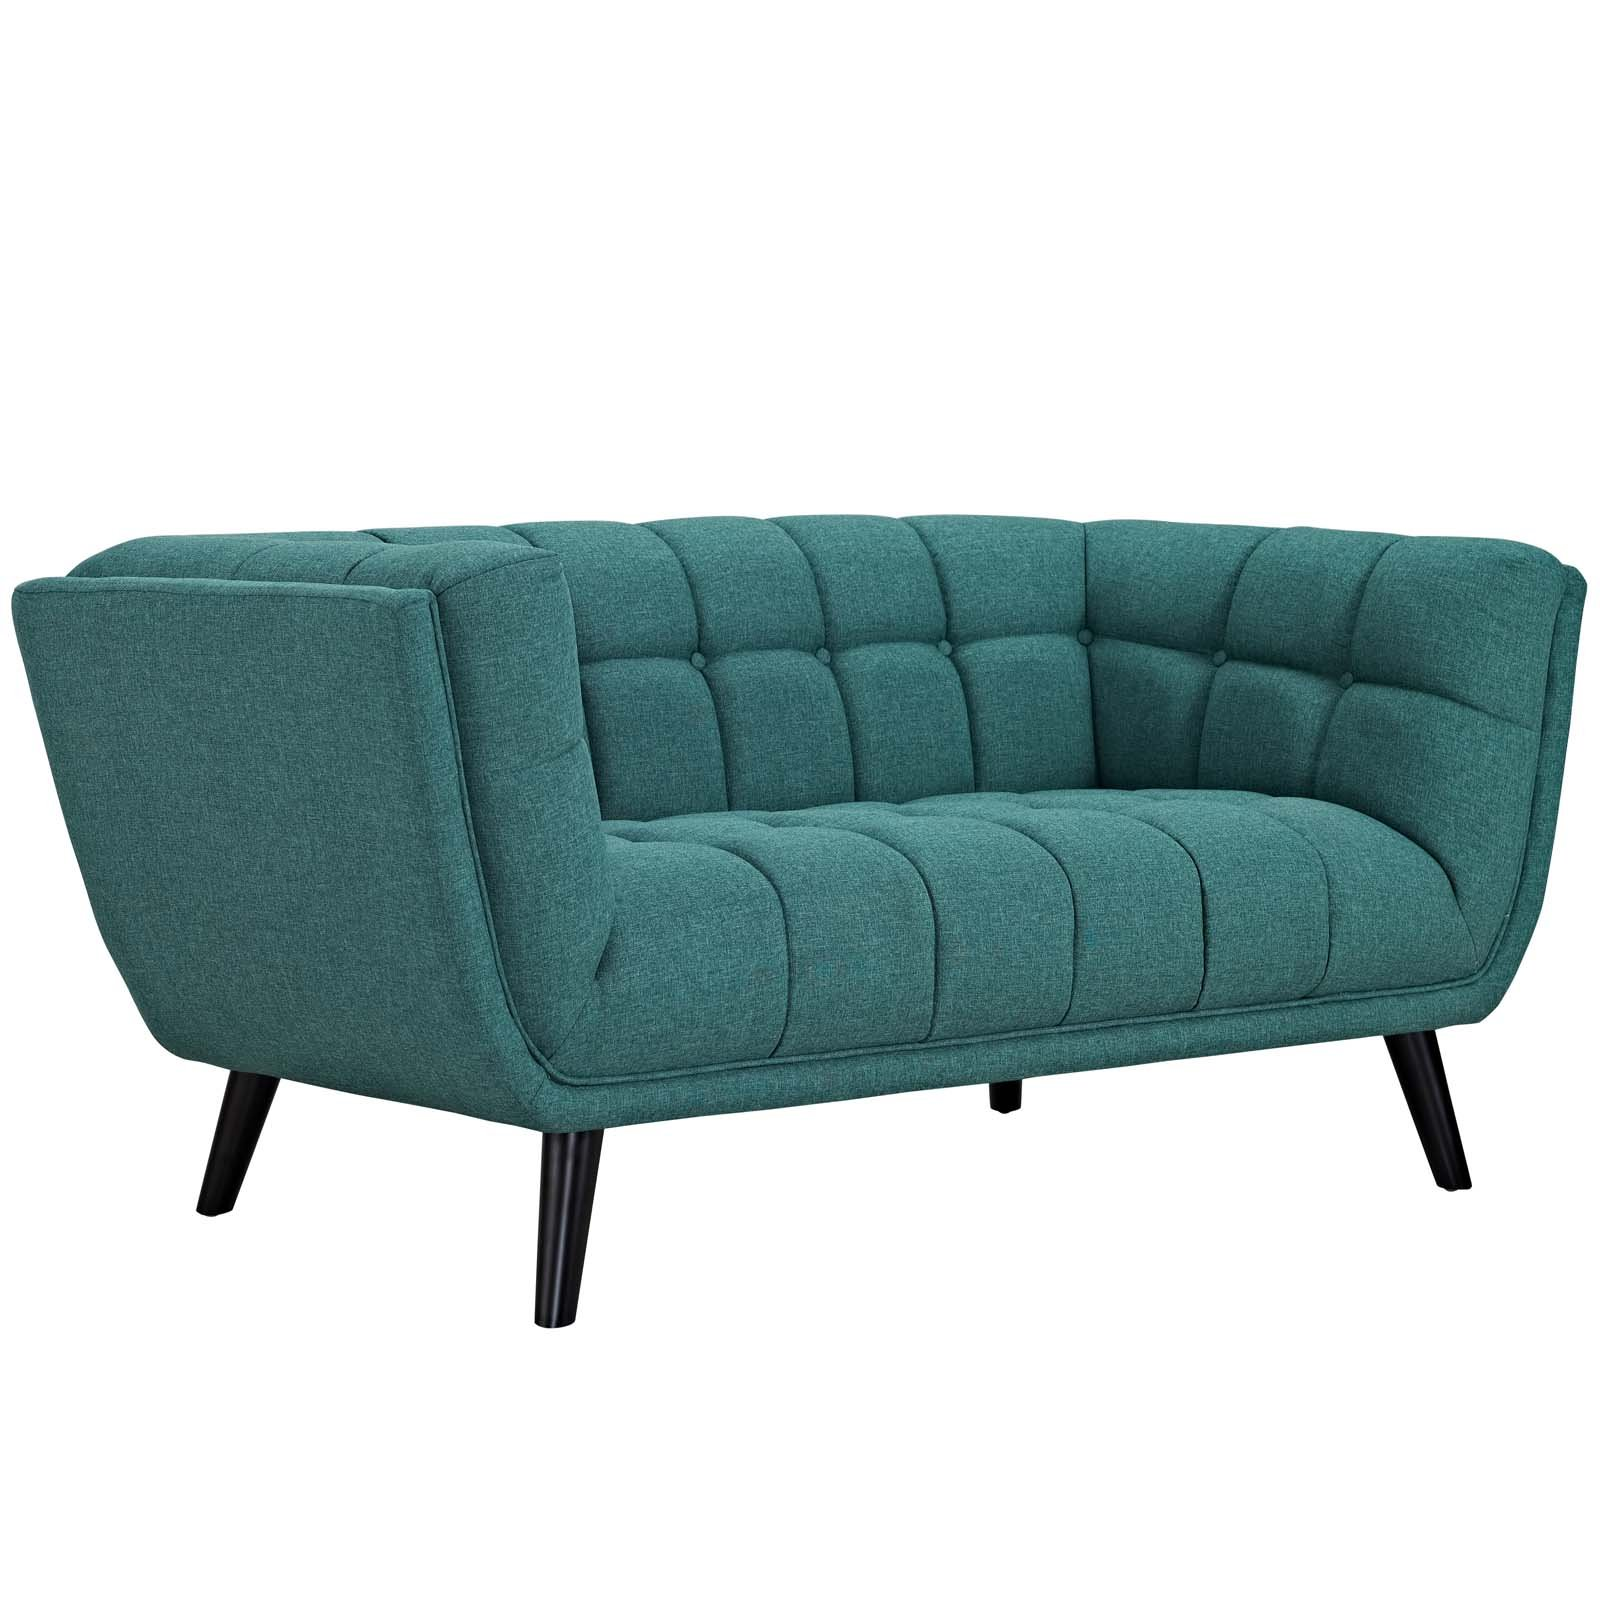 Modway Bestow Upholstered Fabric Button-Tufted Loveseat In Teal